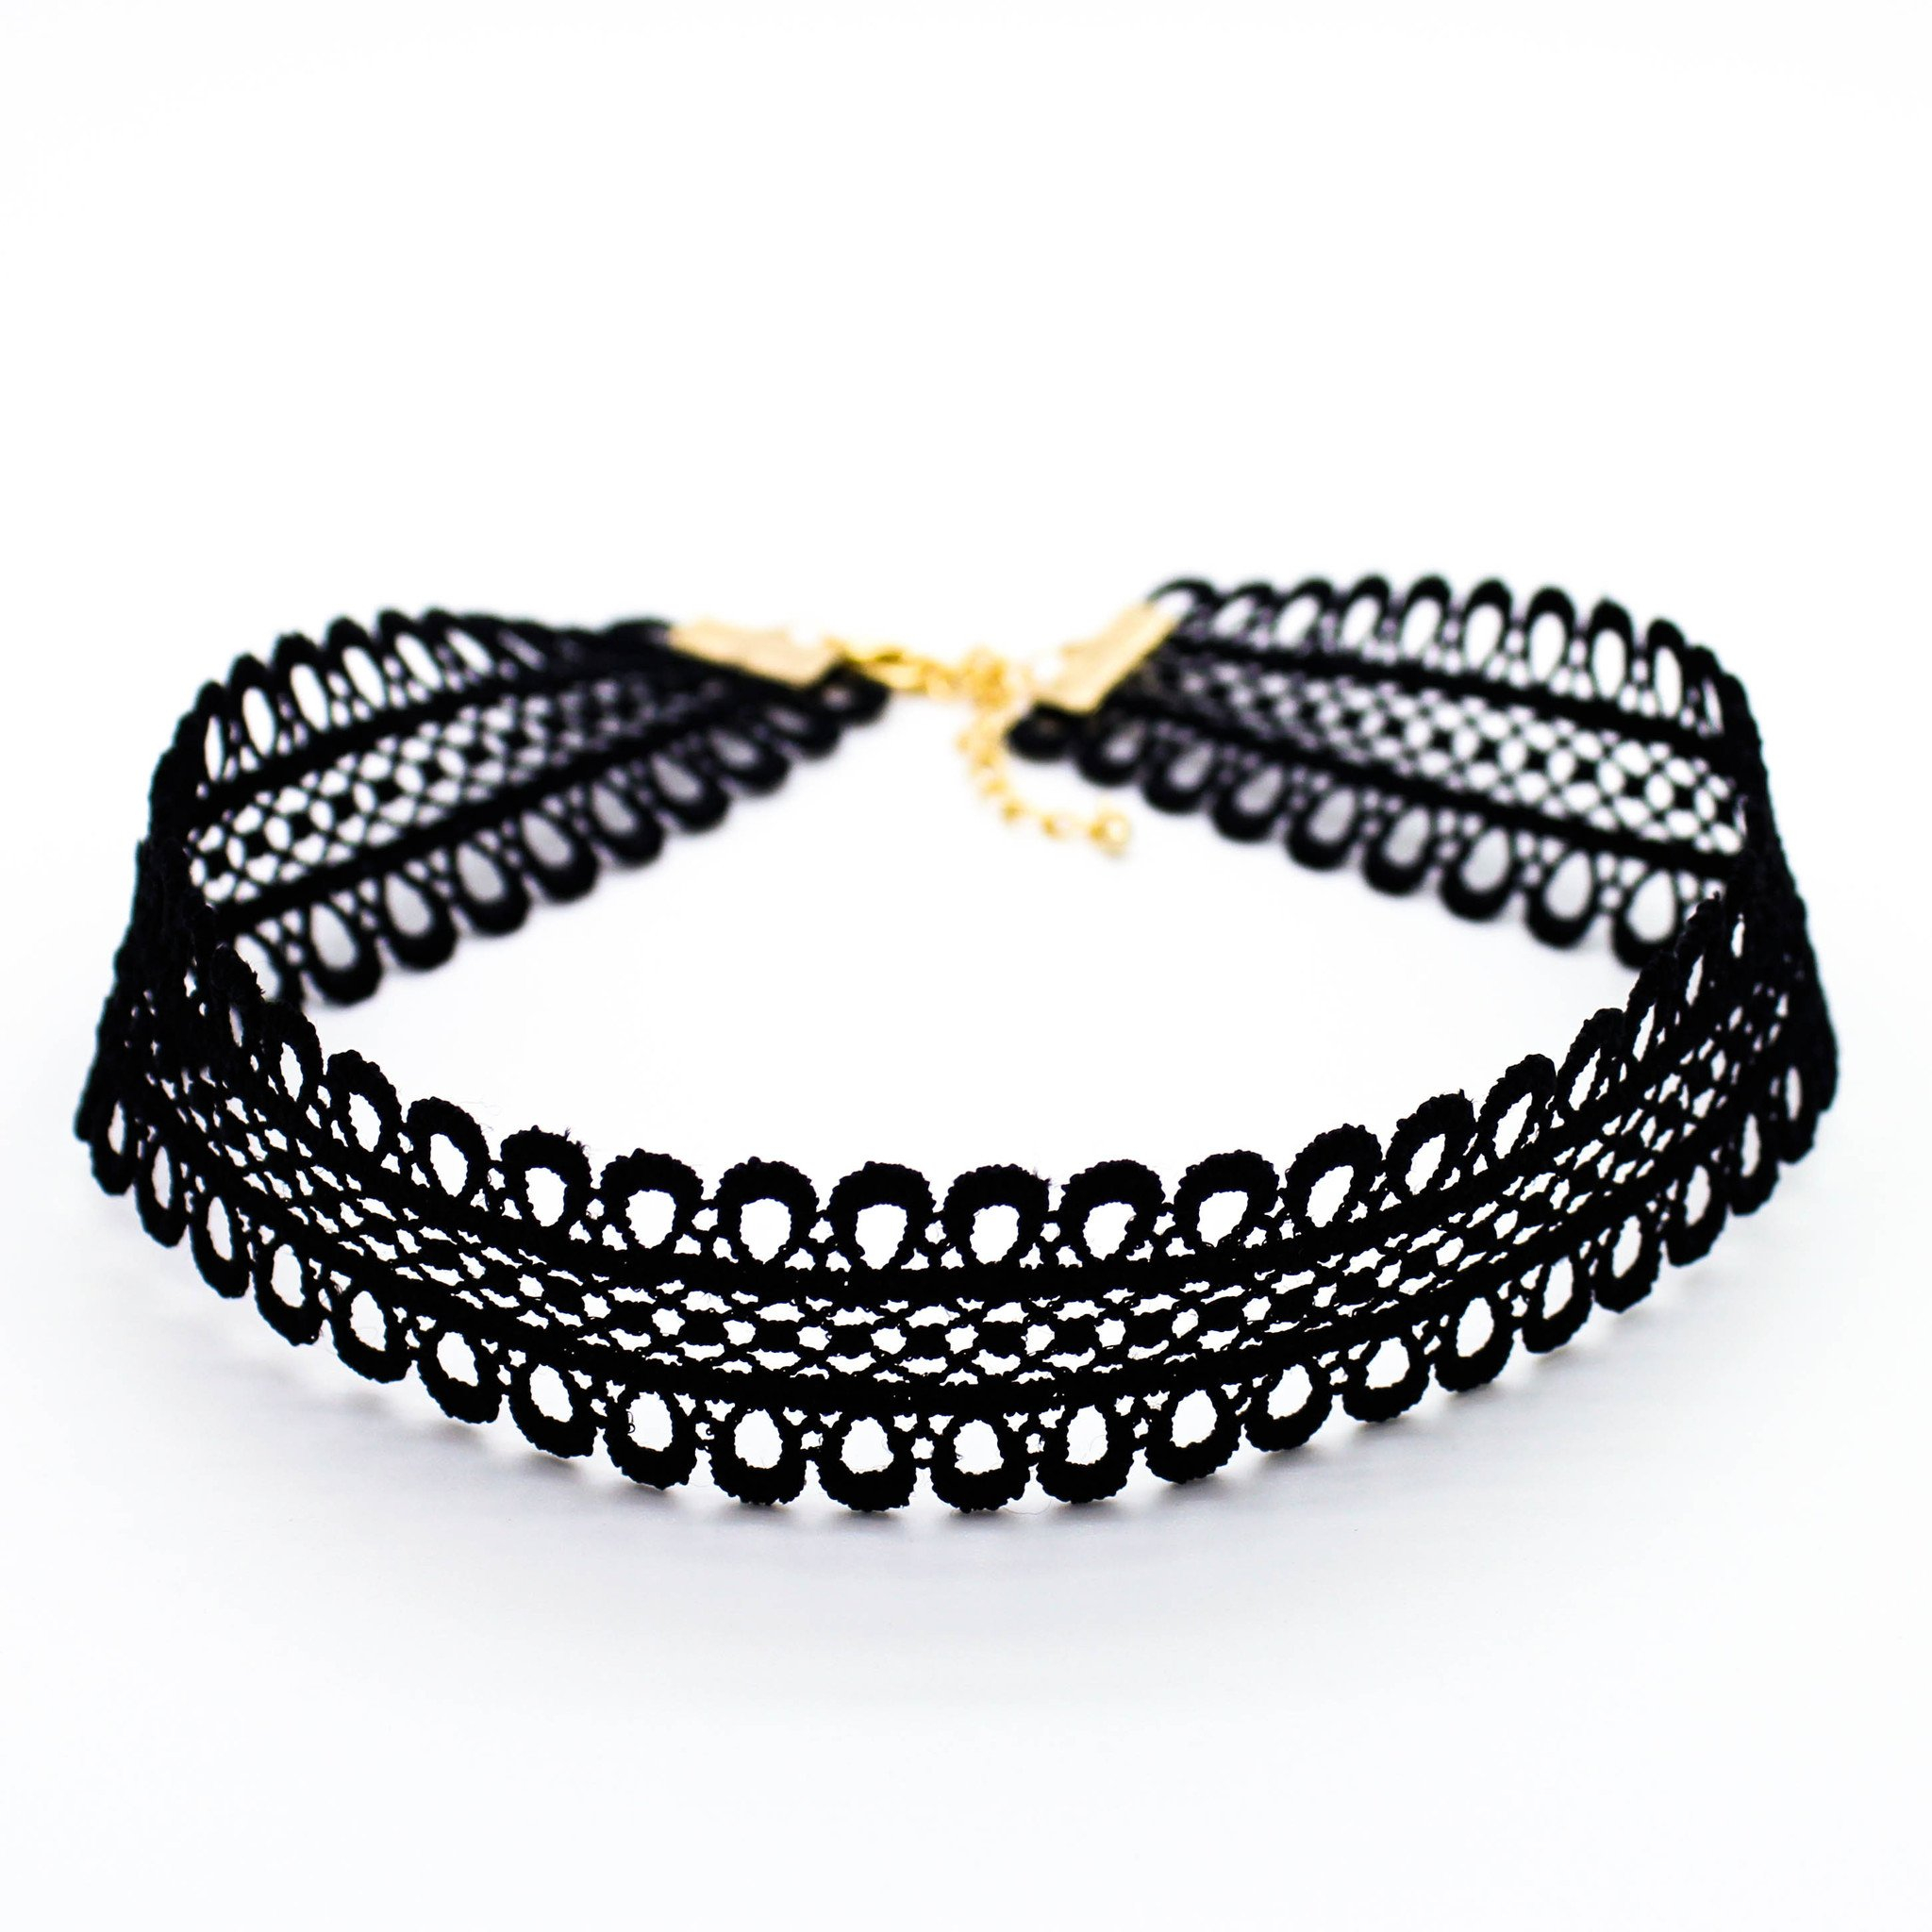 Image of Lovely cut-out choker necklace